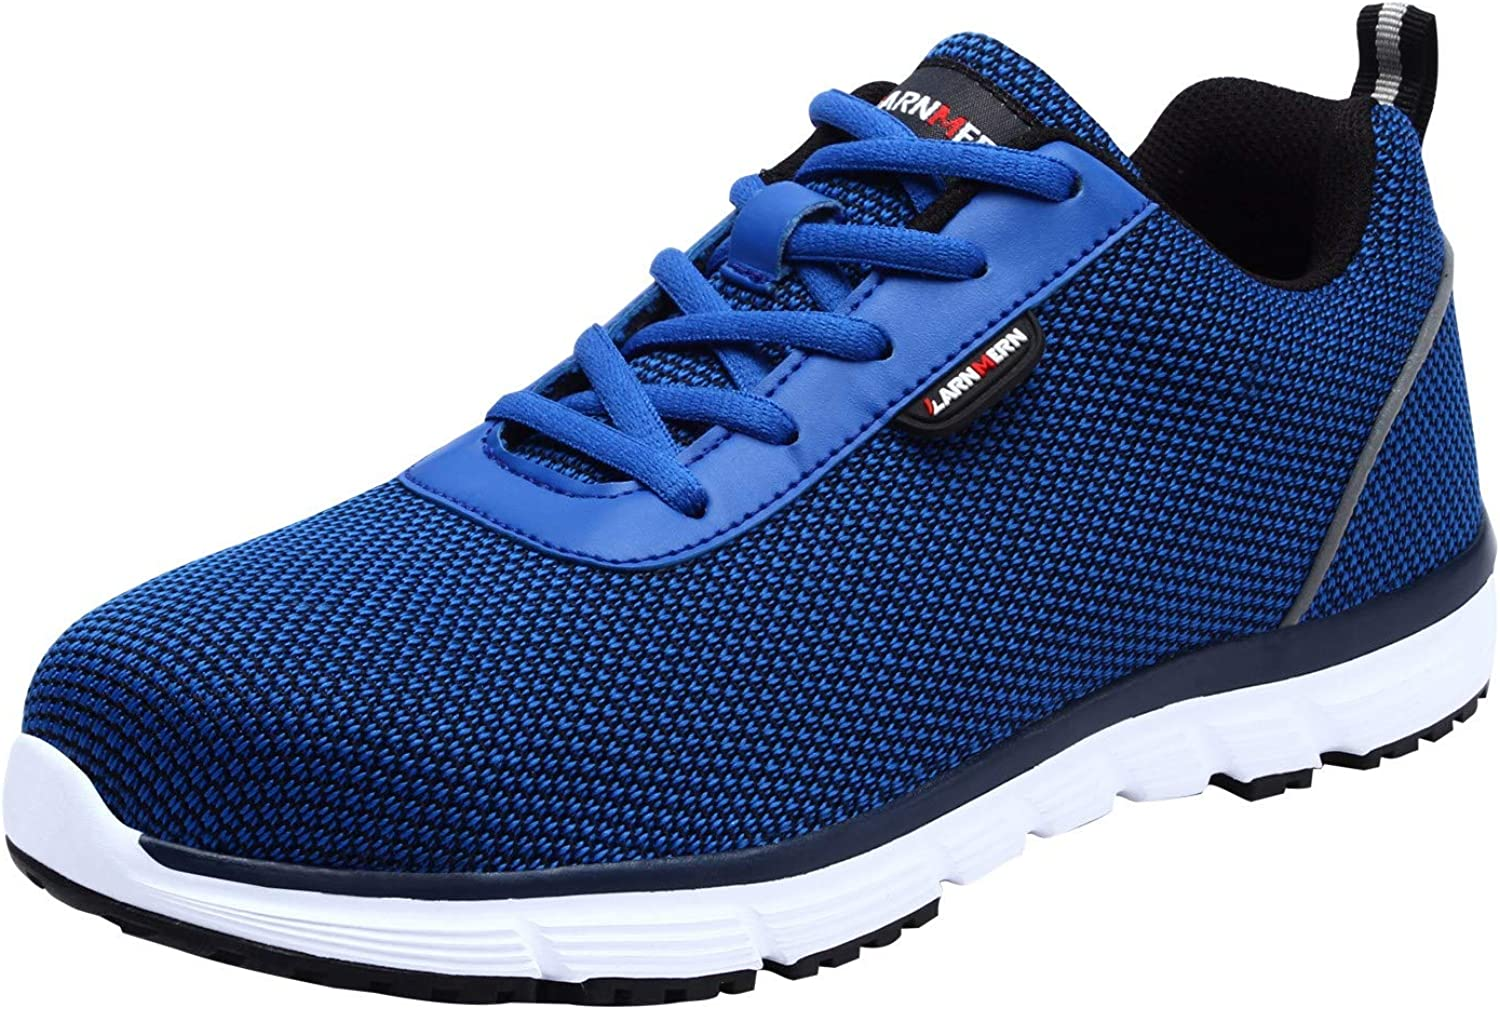 LARNMERN Steel Toe Work Safety shoes Men Reflective Casual Breathable Outdoor Sneakers, LM30K (8, Royal bluee)